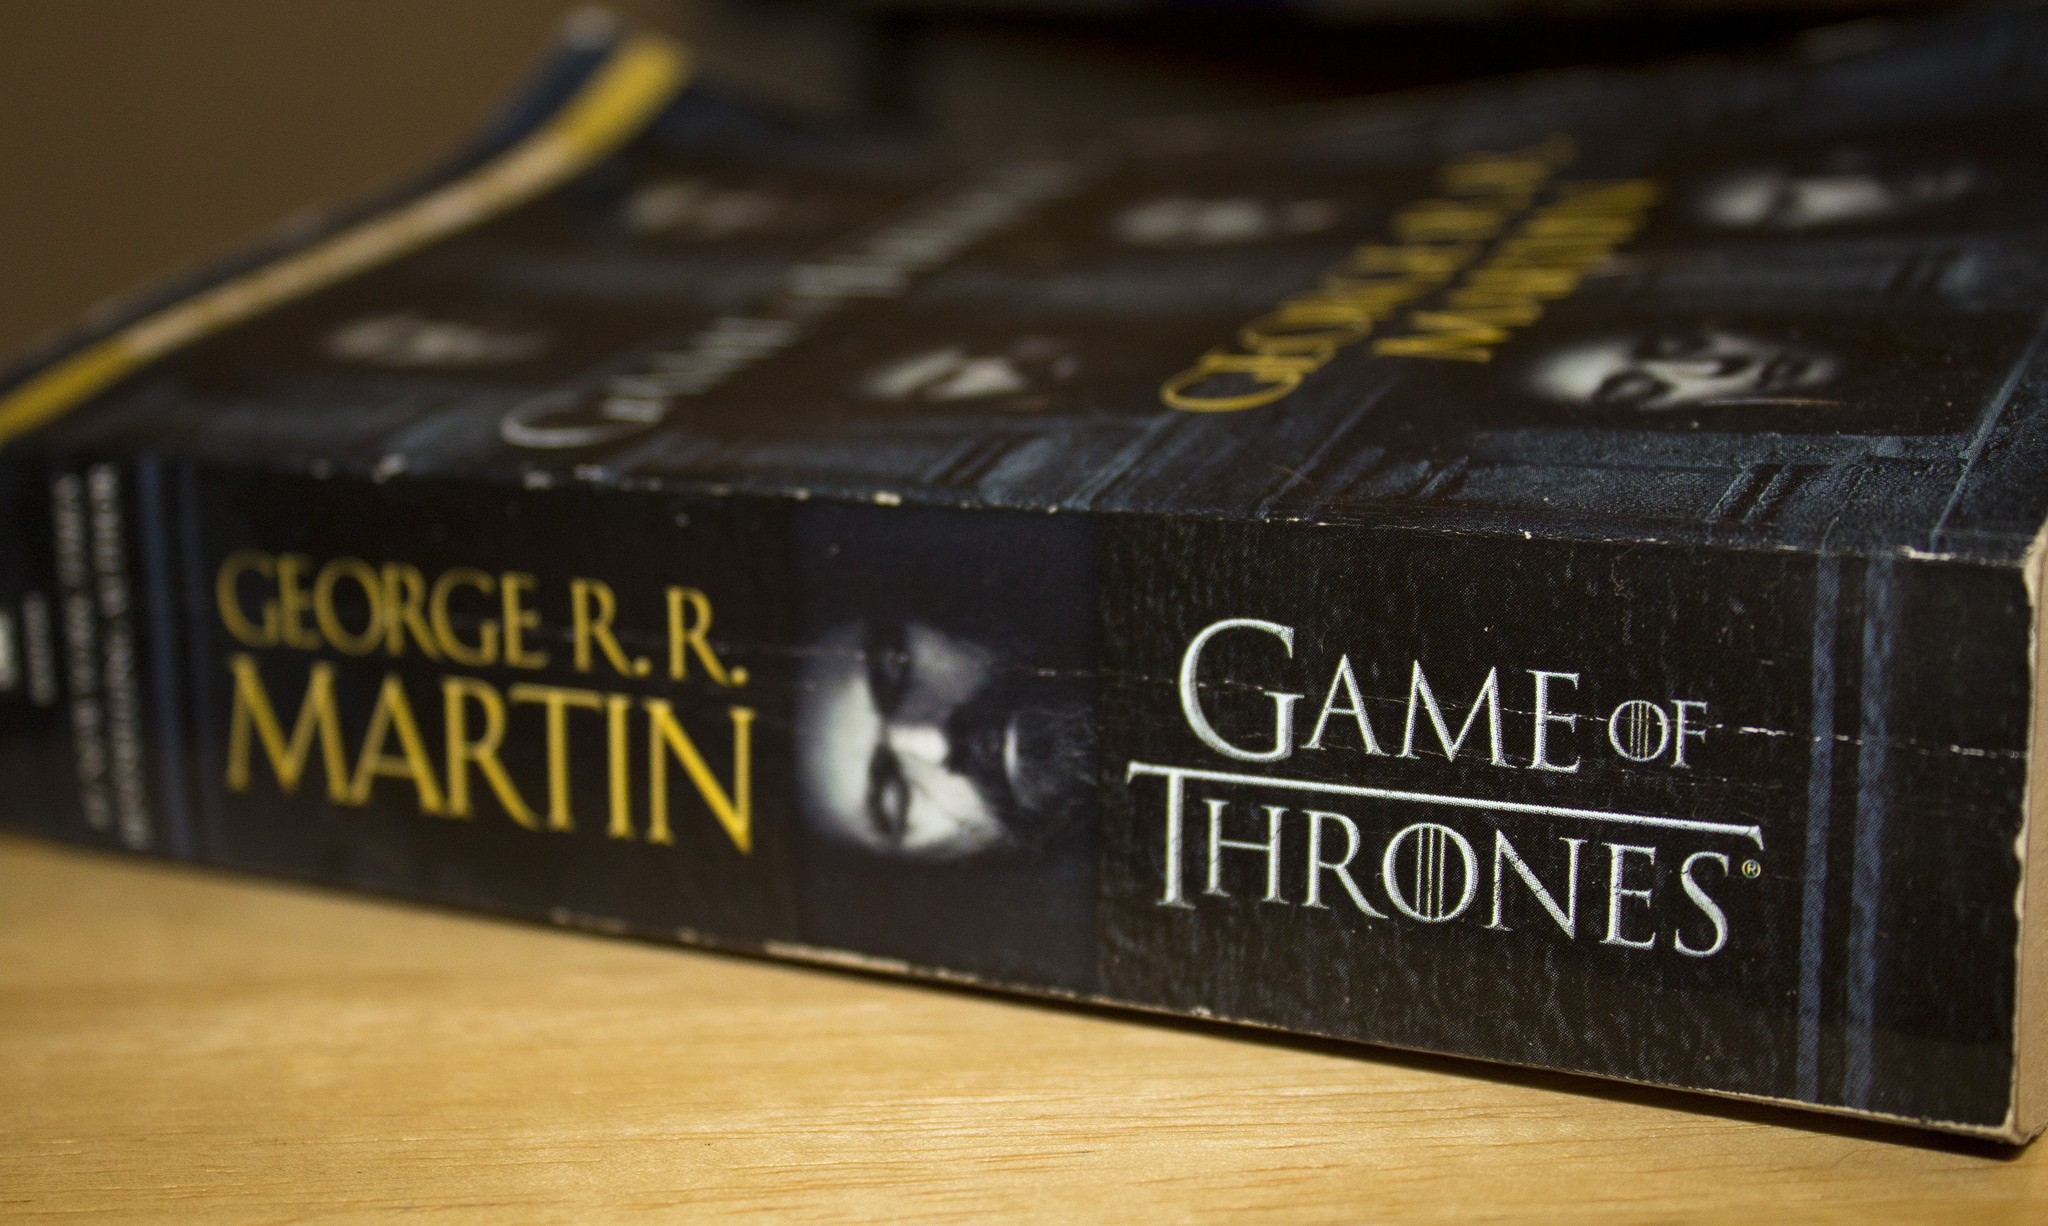 novo livro de Game of Thrones